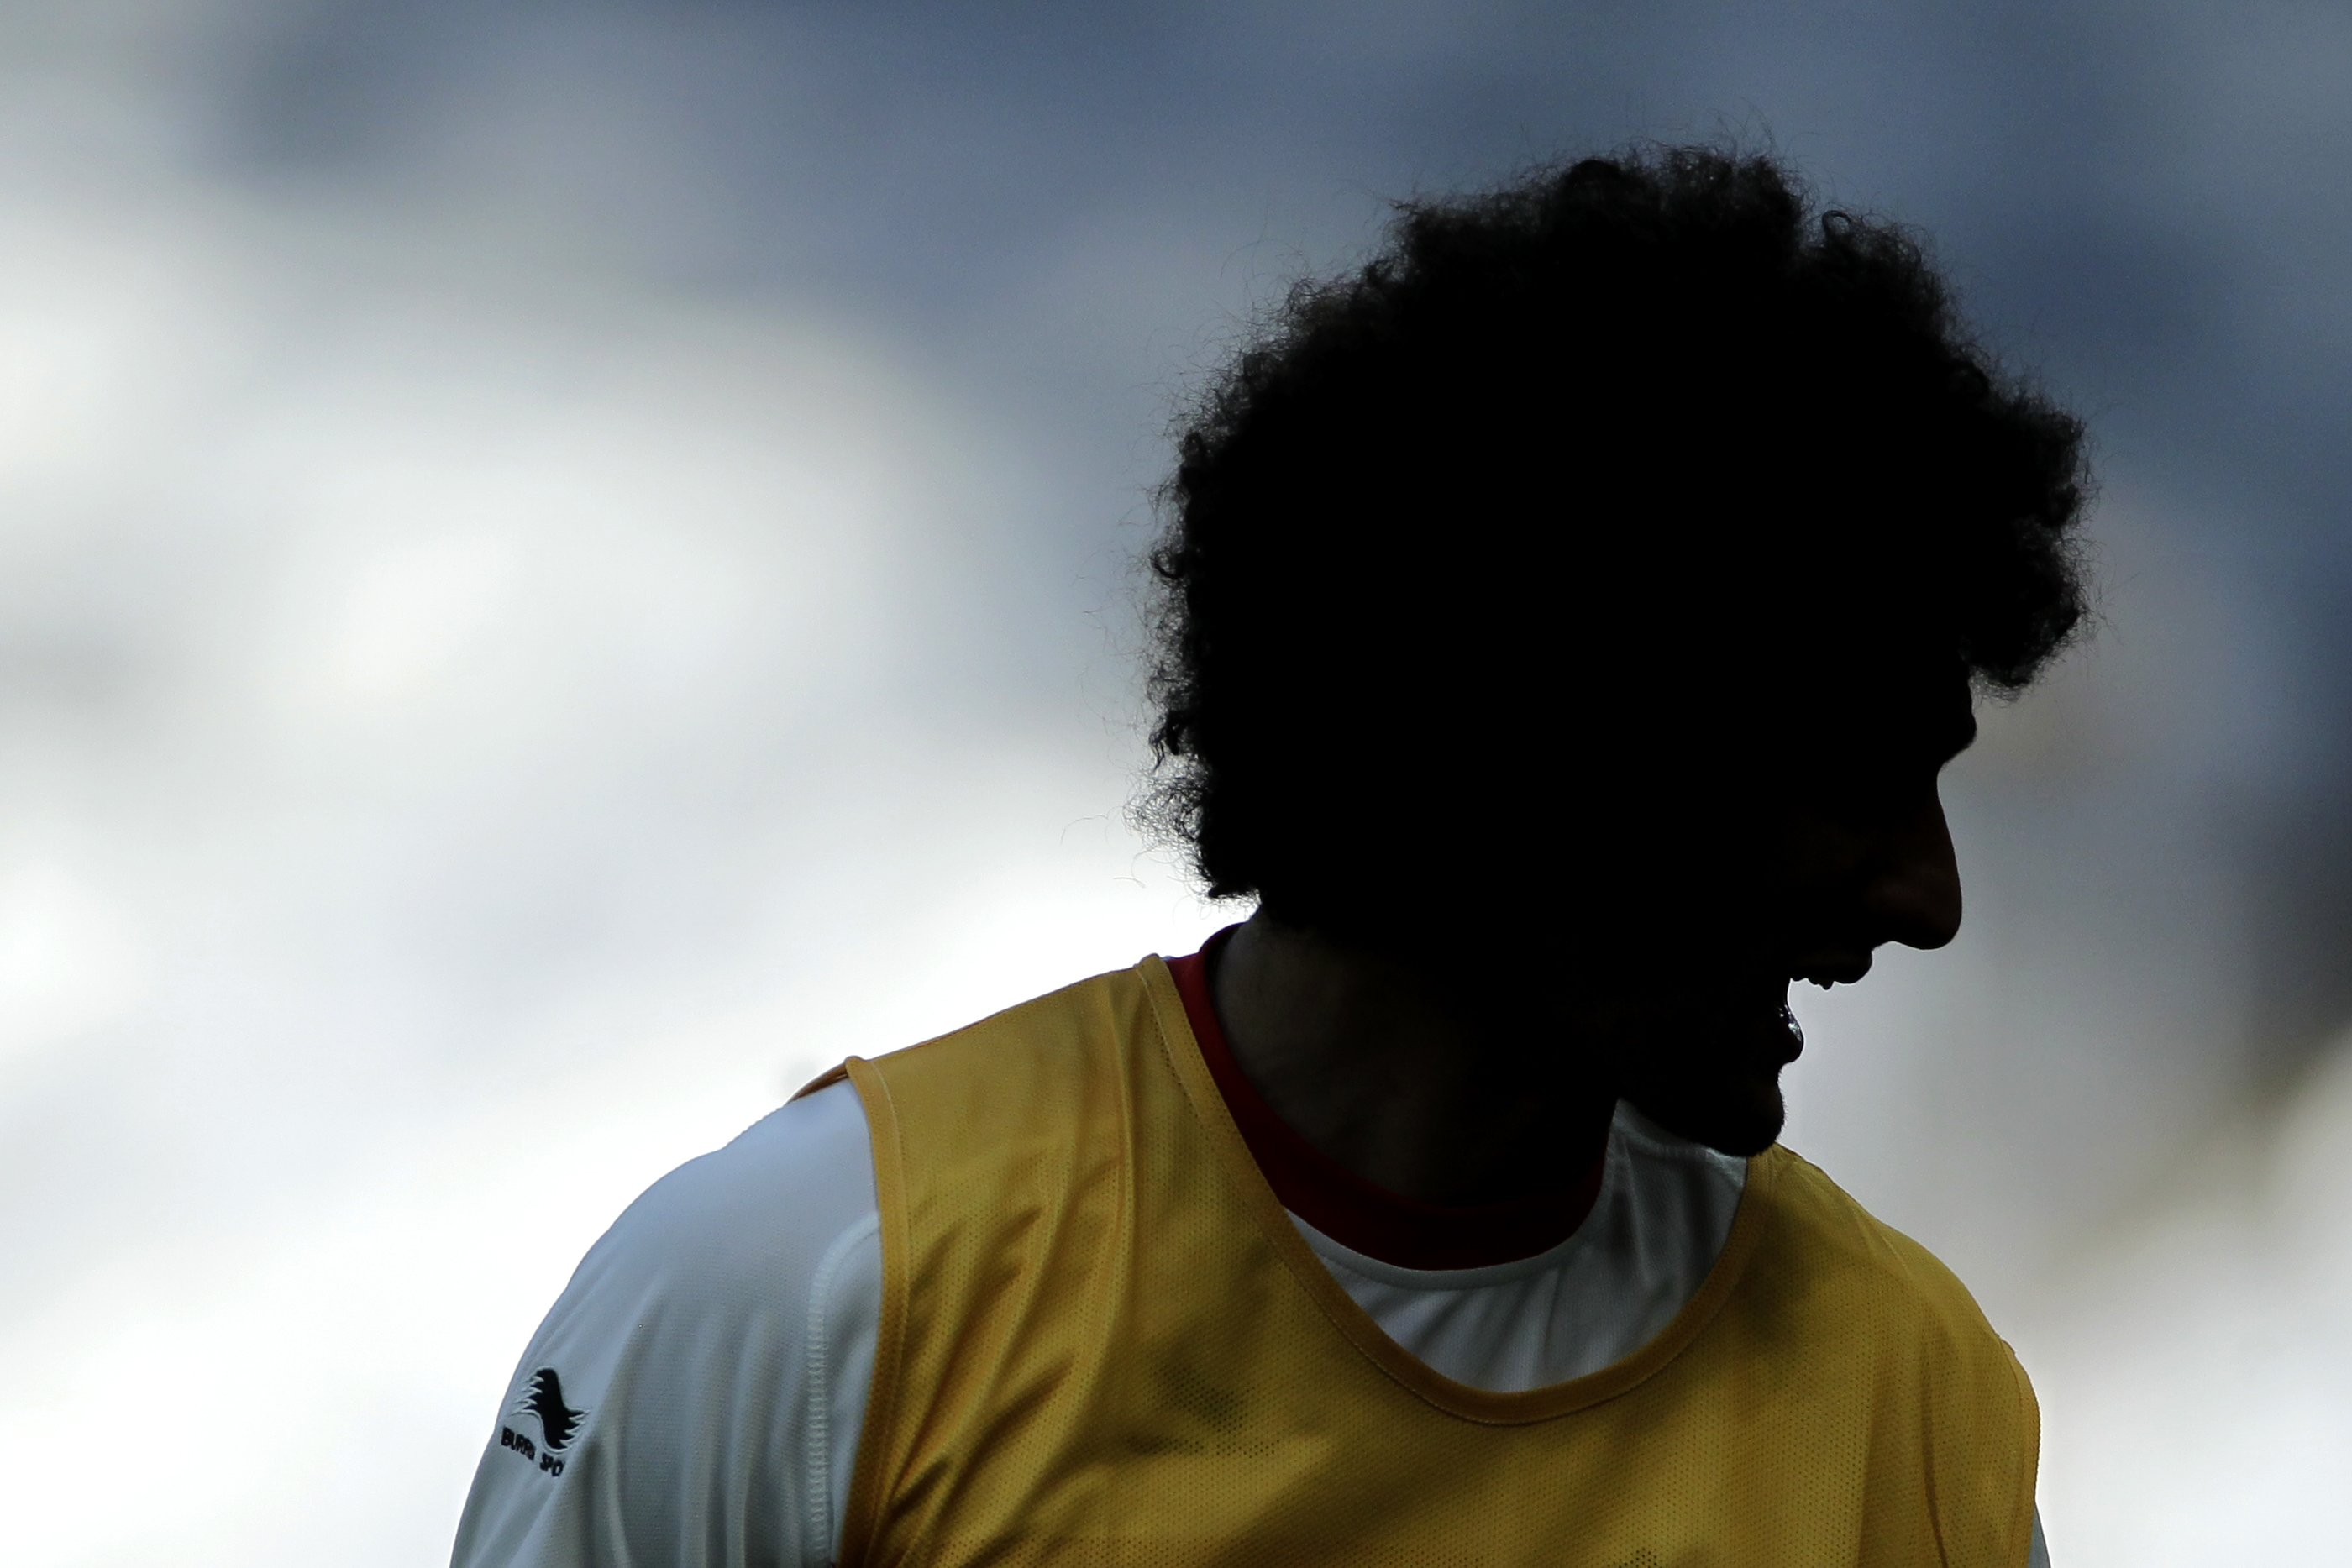 Belgiumís Marouane Fellaini laughs during a training session at the Mineirao Stadium in Belo Horizonte, Brazil on June 16, 2014.